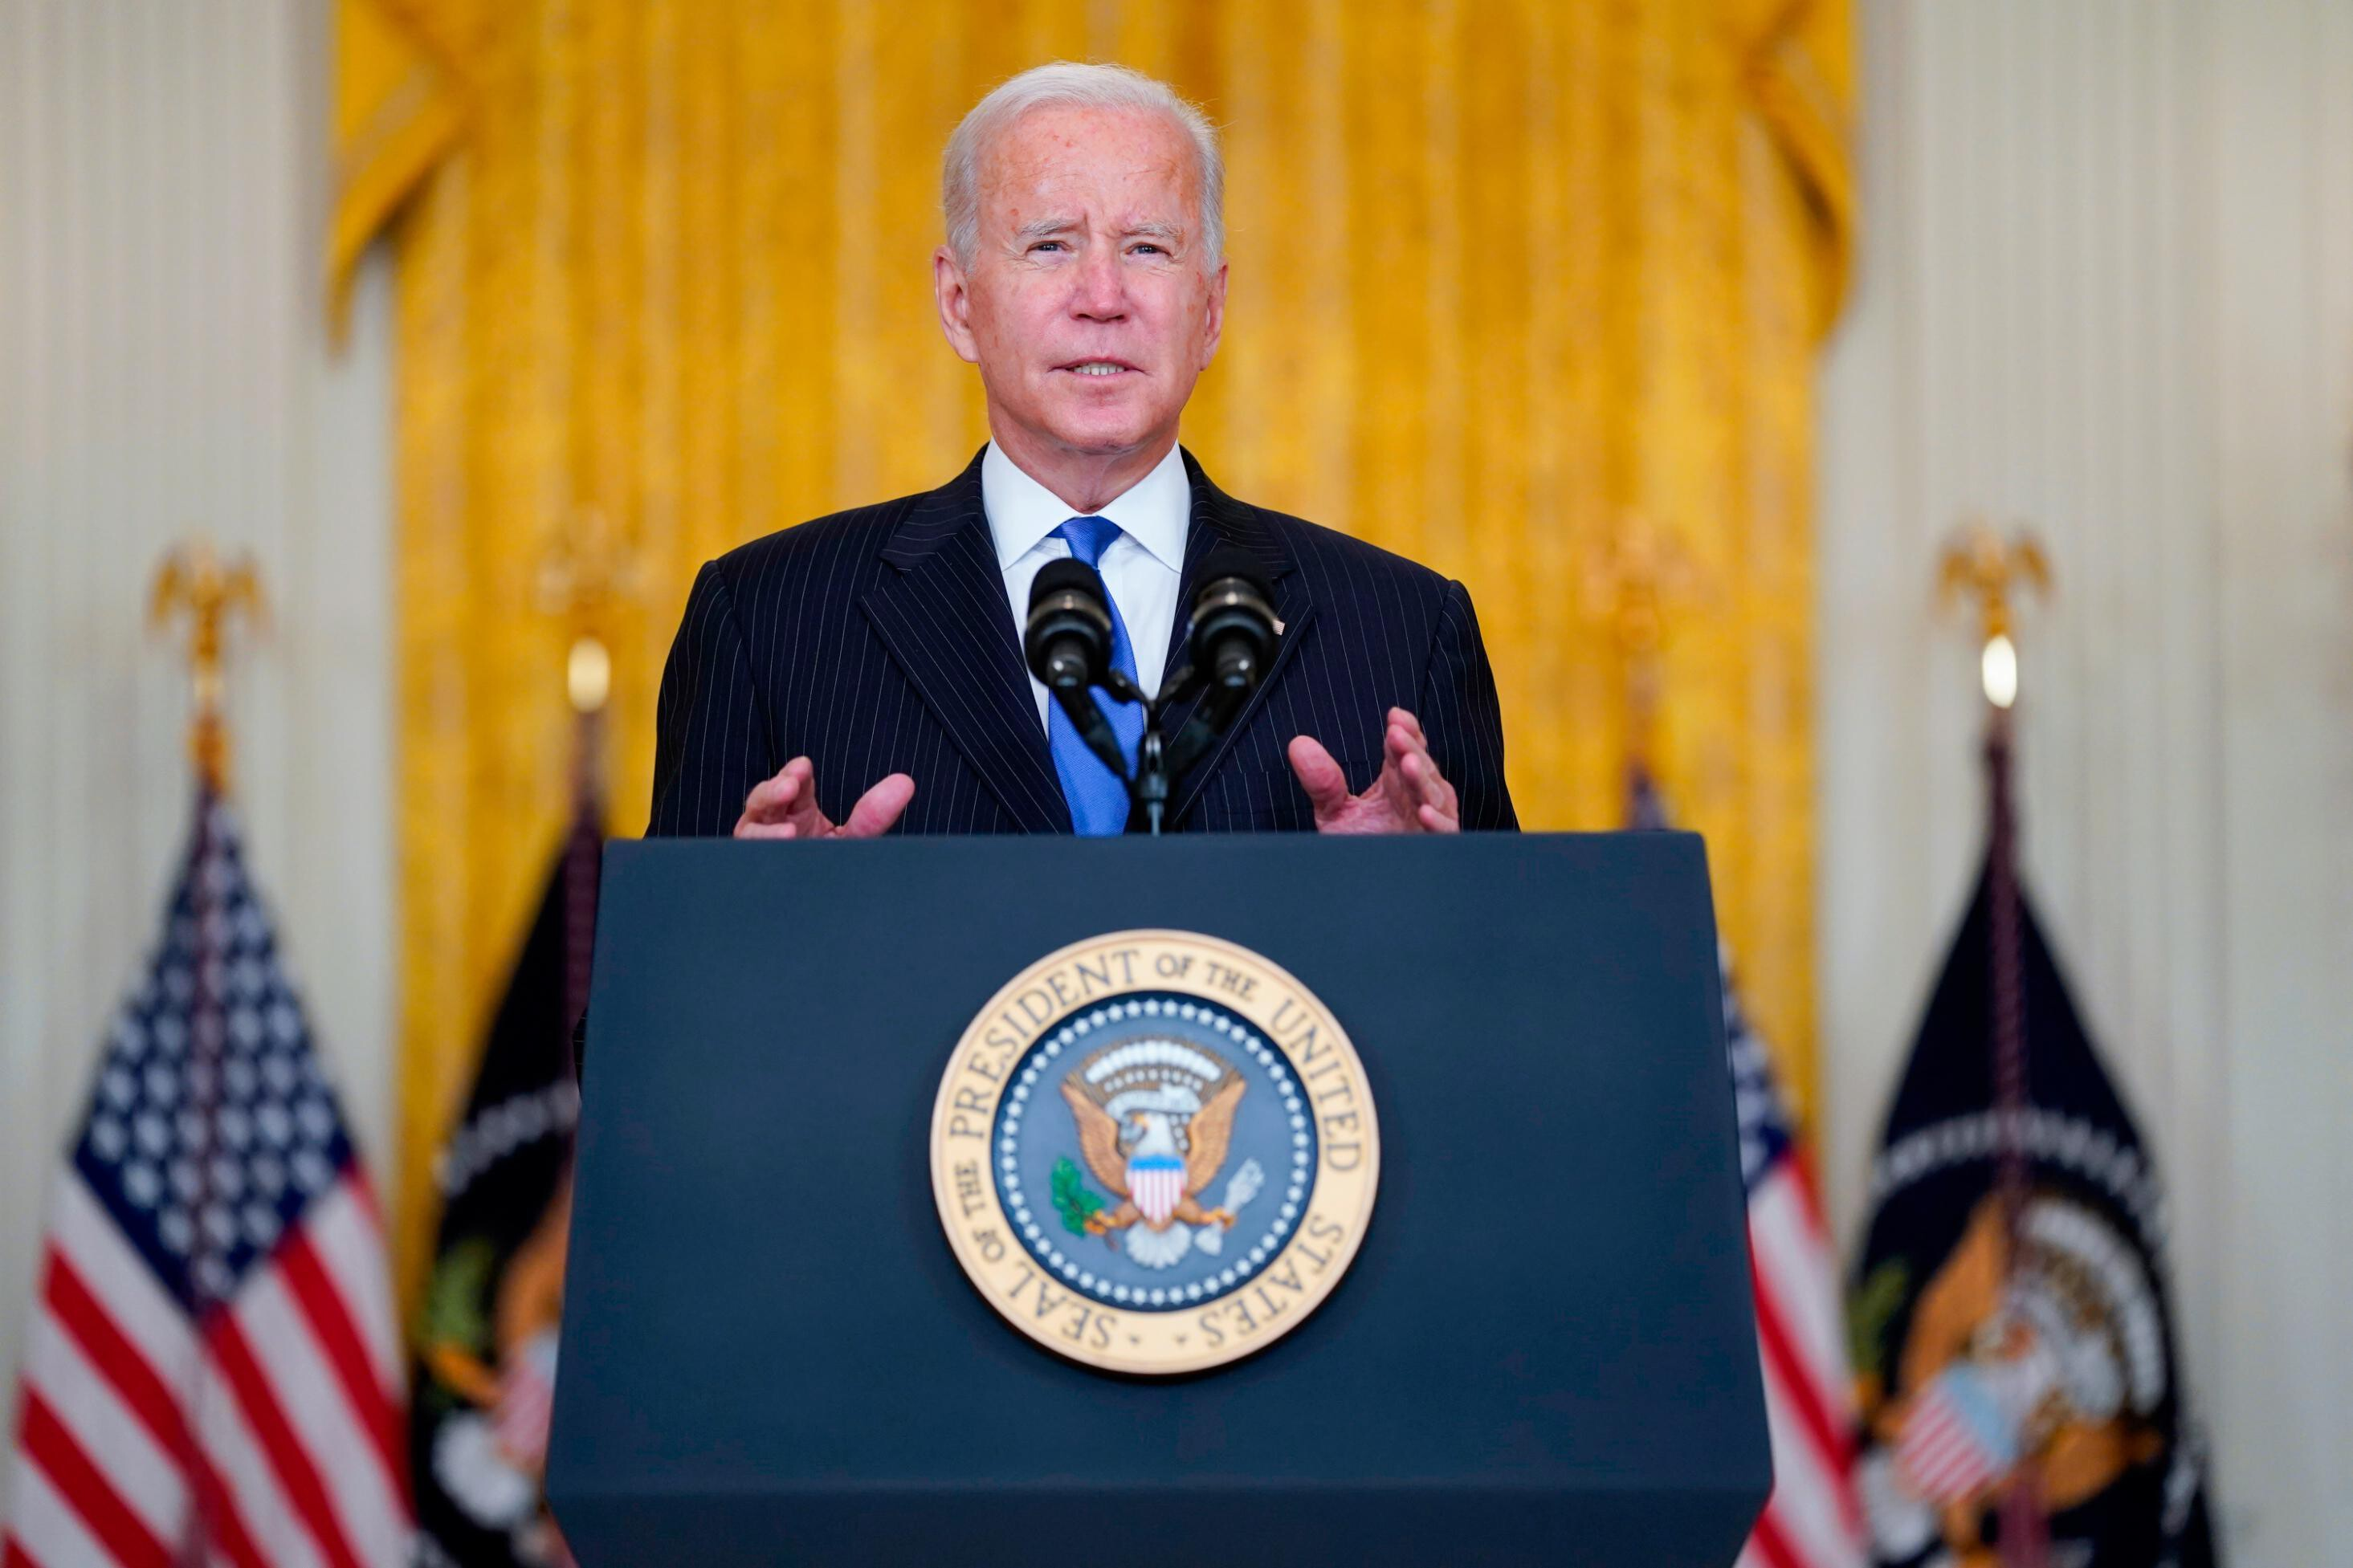 Lawmakers puzzled that Biden is yet to name nominee for senior military job